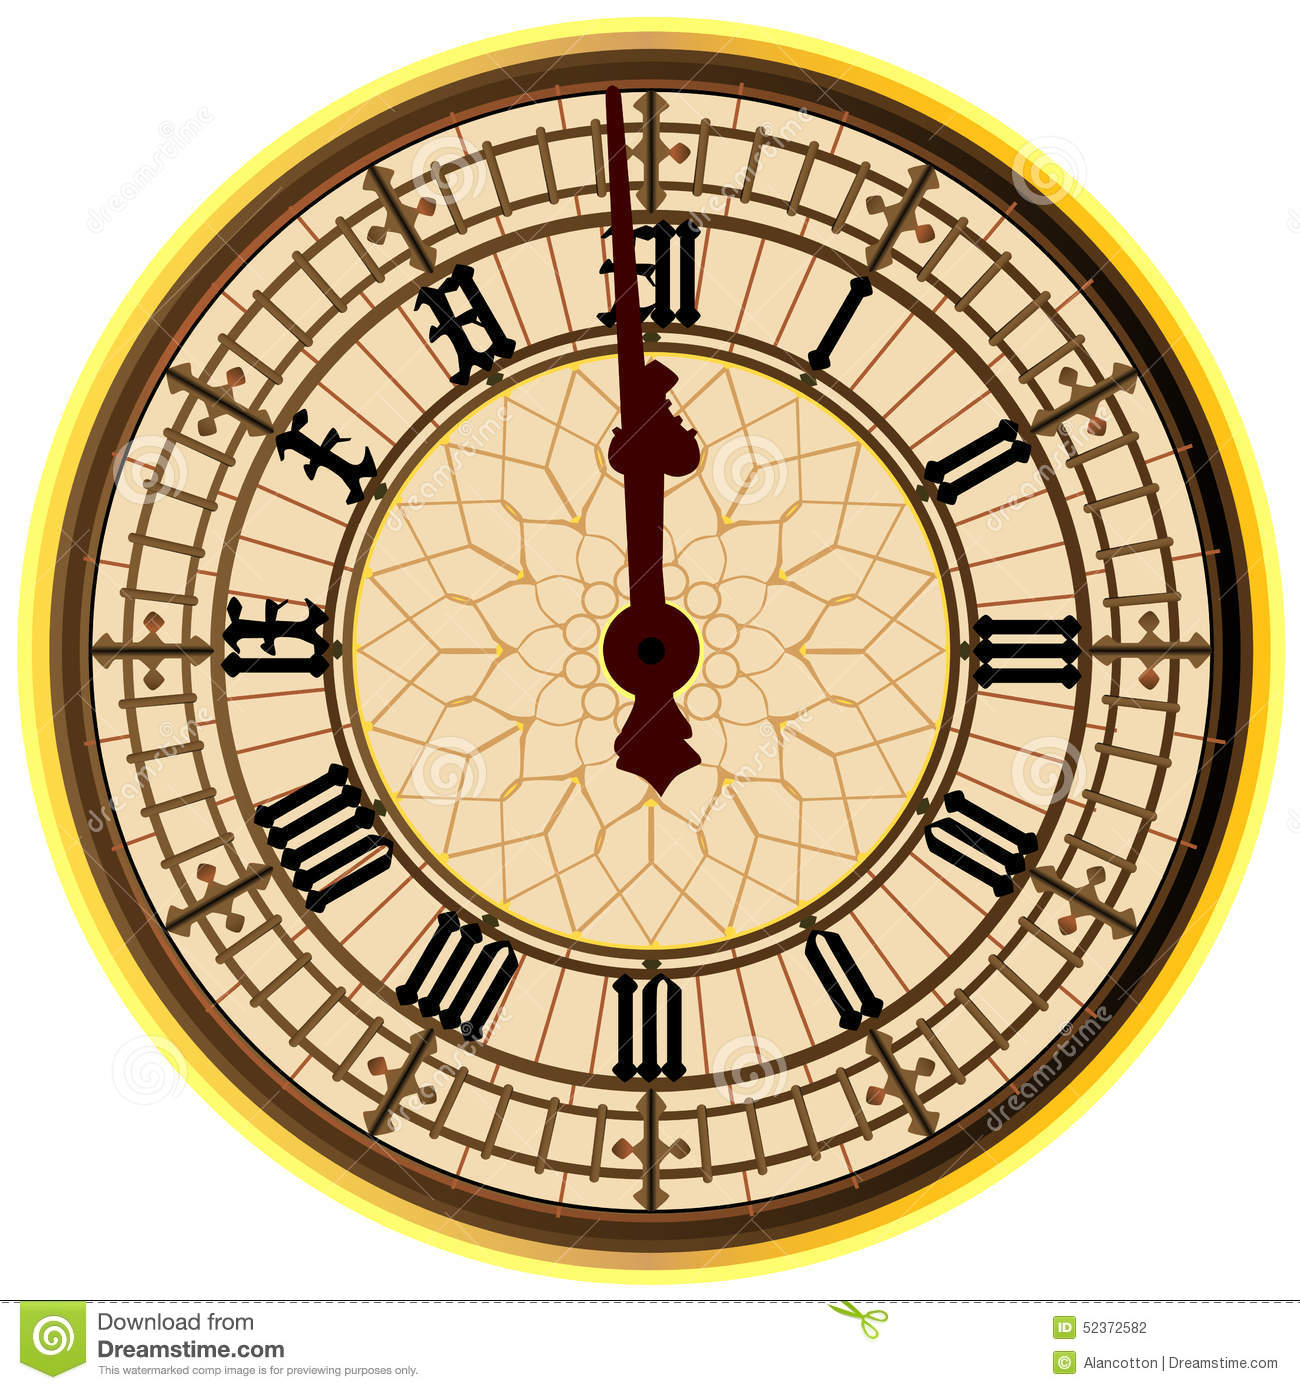 Big ben midnight clock face stock illustration image 52372582